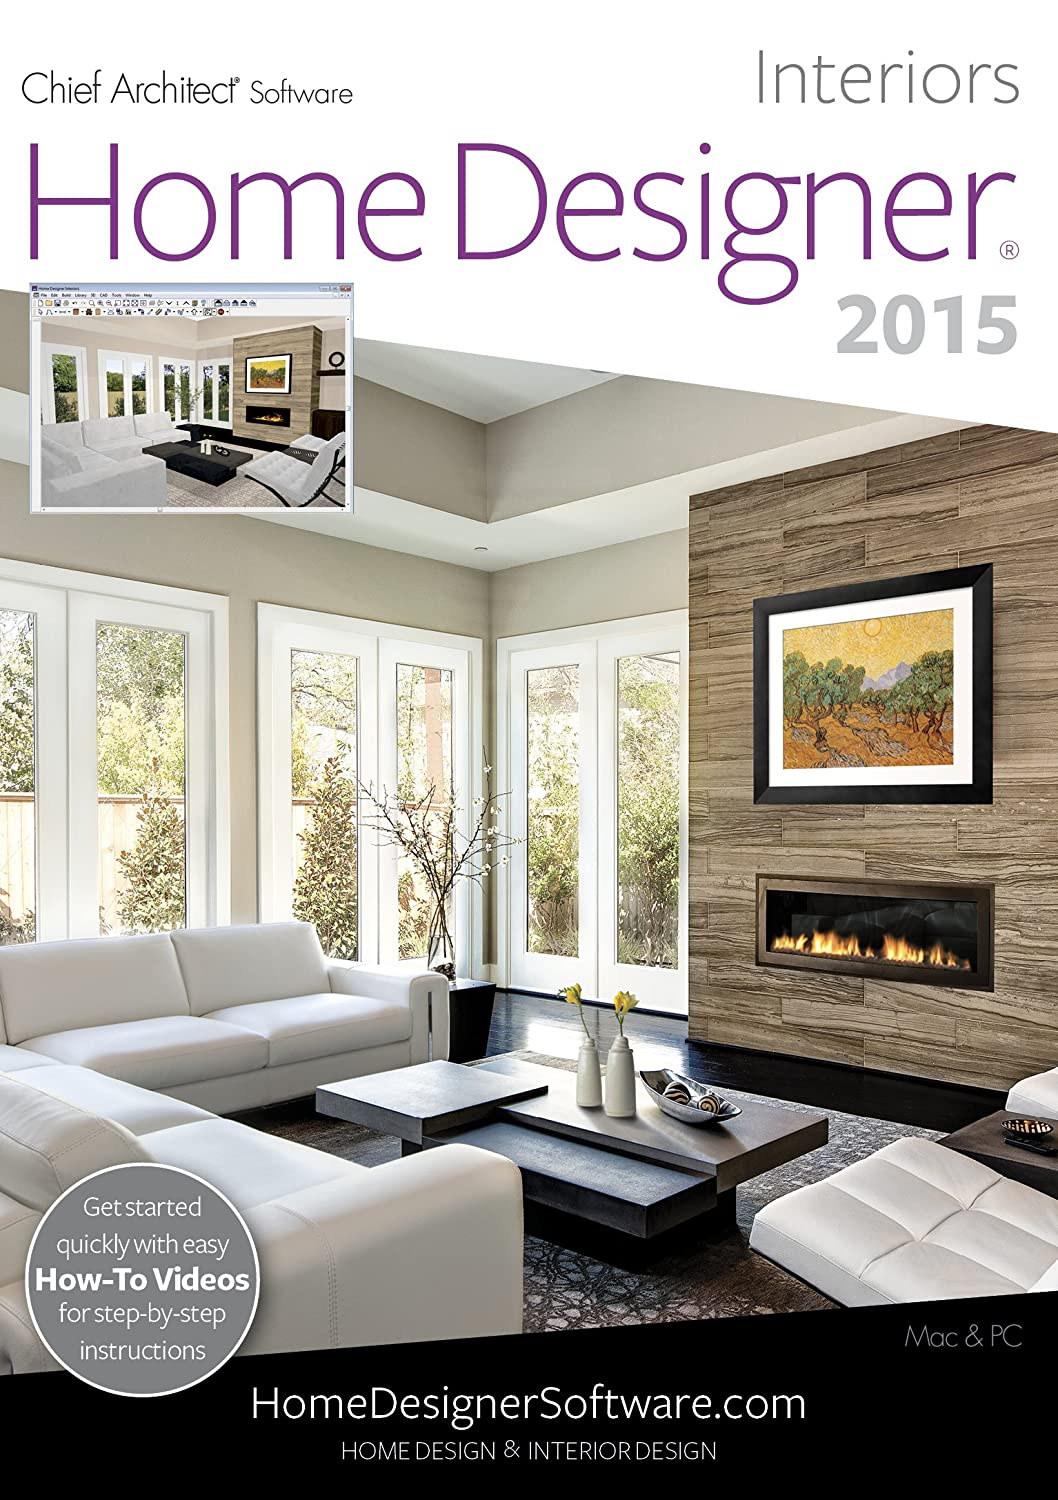 Amazon.com: Home Designer Interiors 2015 [Download]: Software